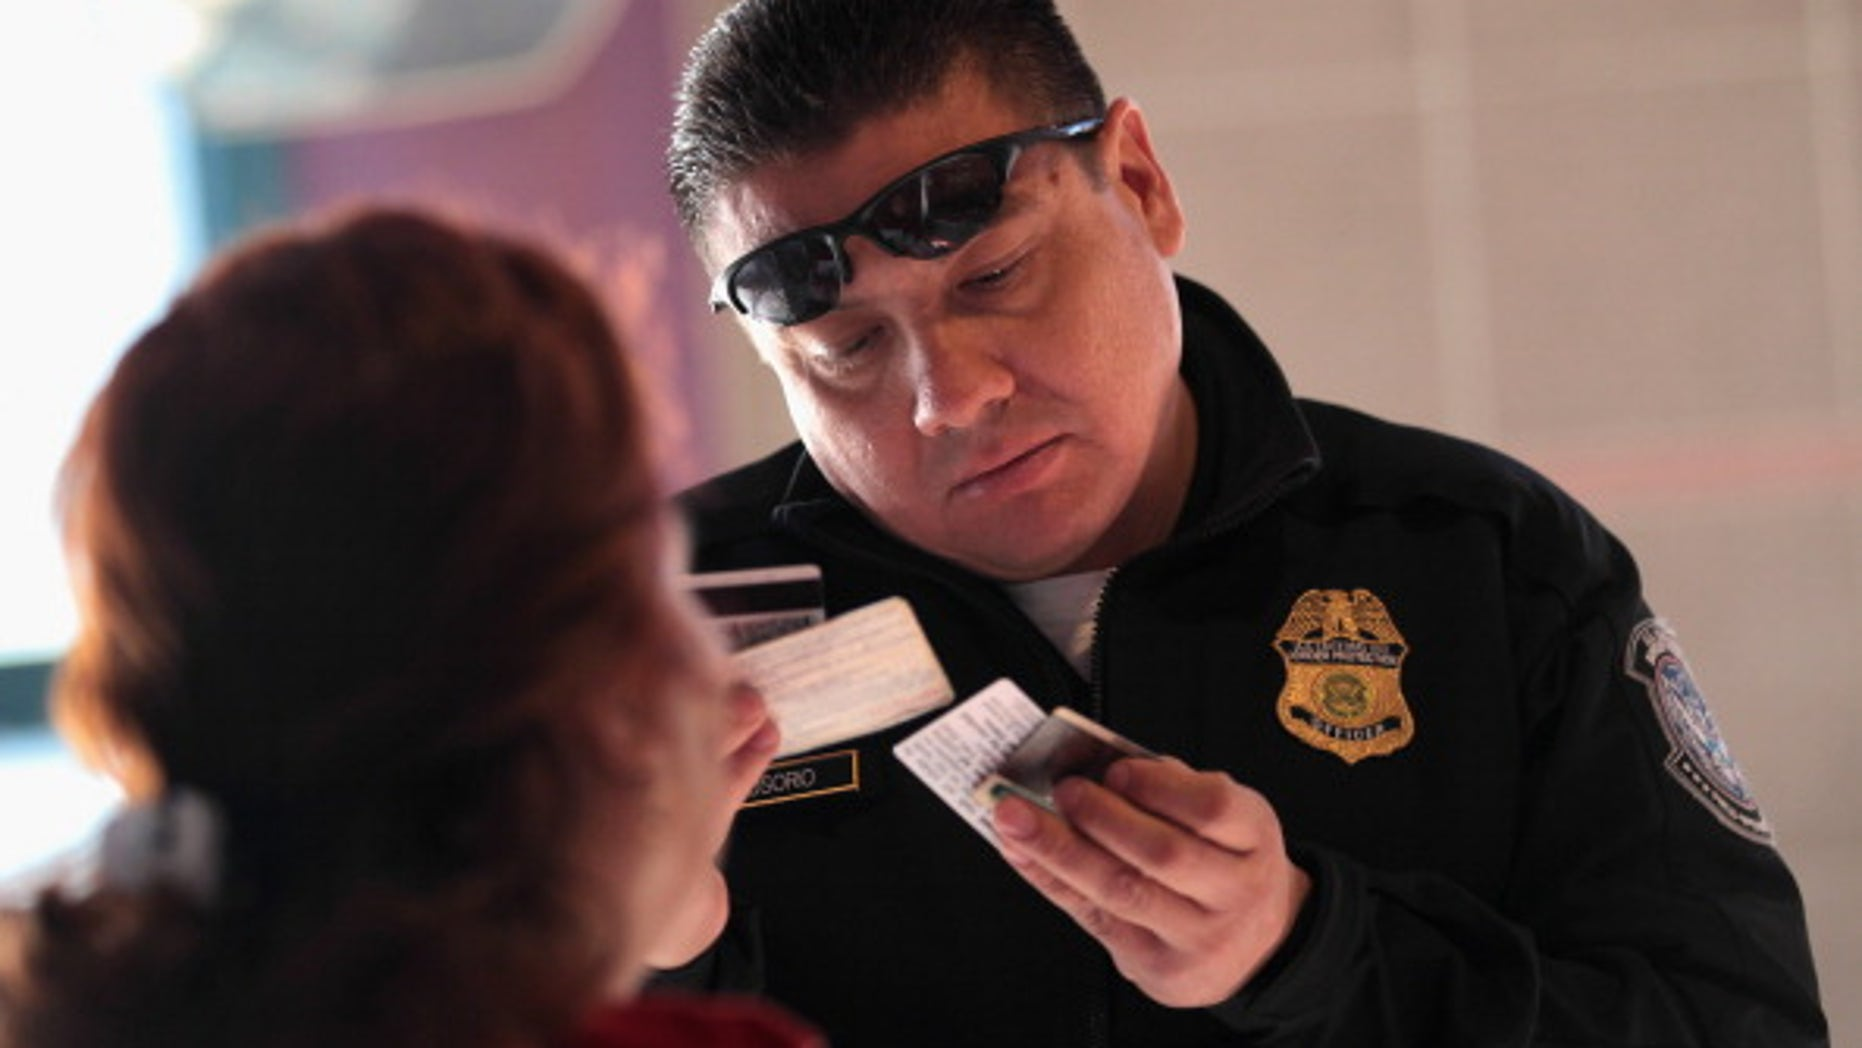 """NOGALES, AZ - DECEMBER 10:  Officer Juan Osorio inspects the identifications of a Mexican citizen at the U.S.-Mexico border crossing on December 10, 2010 in Nogales, Arizona. Despite Arizona's tough immigration enforcement laws, thousands of Mexican citizens have permits to work in the U.S. and commute daily from their homes across the border in Mexico. Border crossings, known as """"ports of entry,"""" are run by the U.S. Office of Field Operations, which is part of the department of U.S. Customs and Border Protection. Port personnel are the face at the border for most visitors and cargo entering the United States and are authorized to stop, question, search and examine everyone entering the country.  (Photo by John Moore/Getty Images)"""